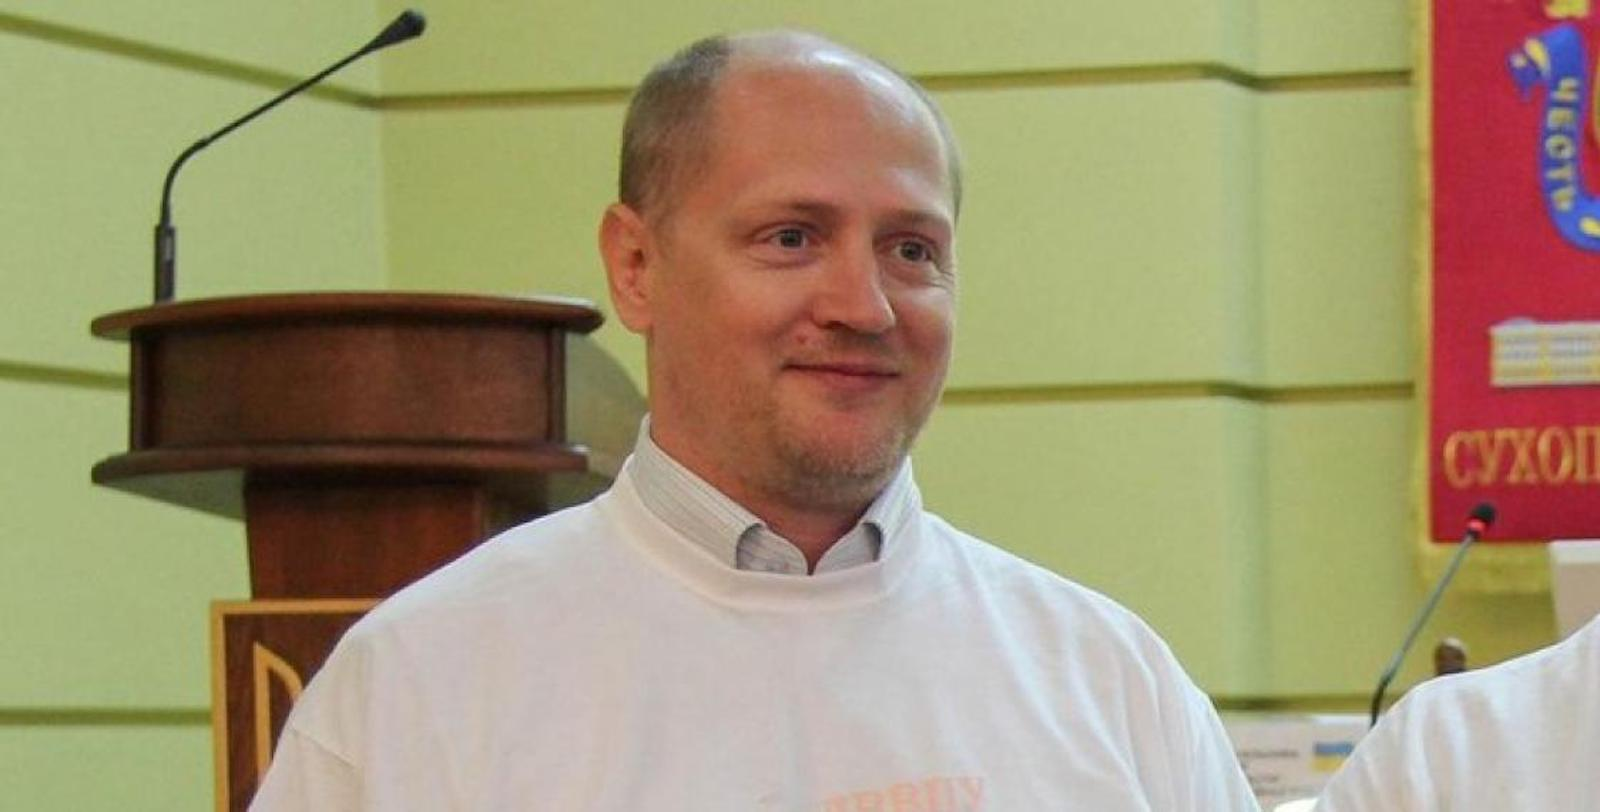 Ukraine Radio journalist Pavel Sharoiko was arrested in Belarus